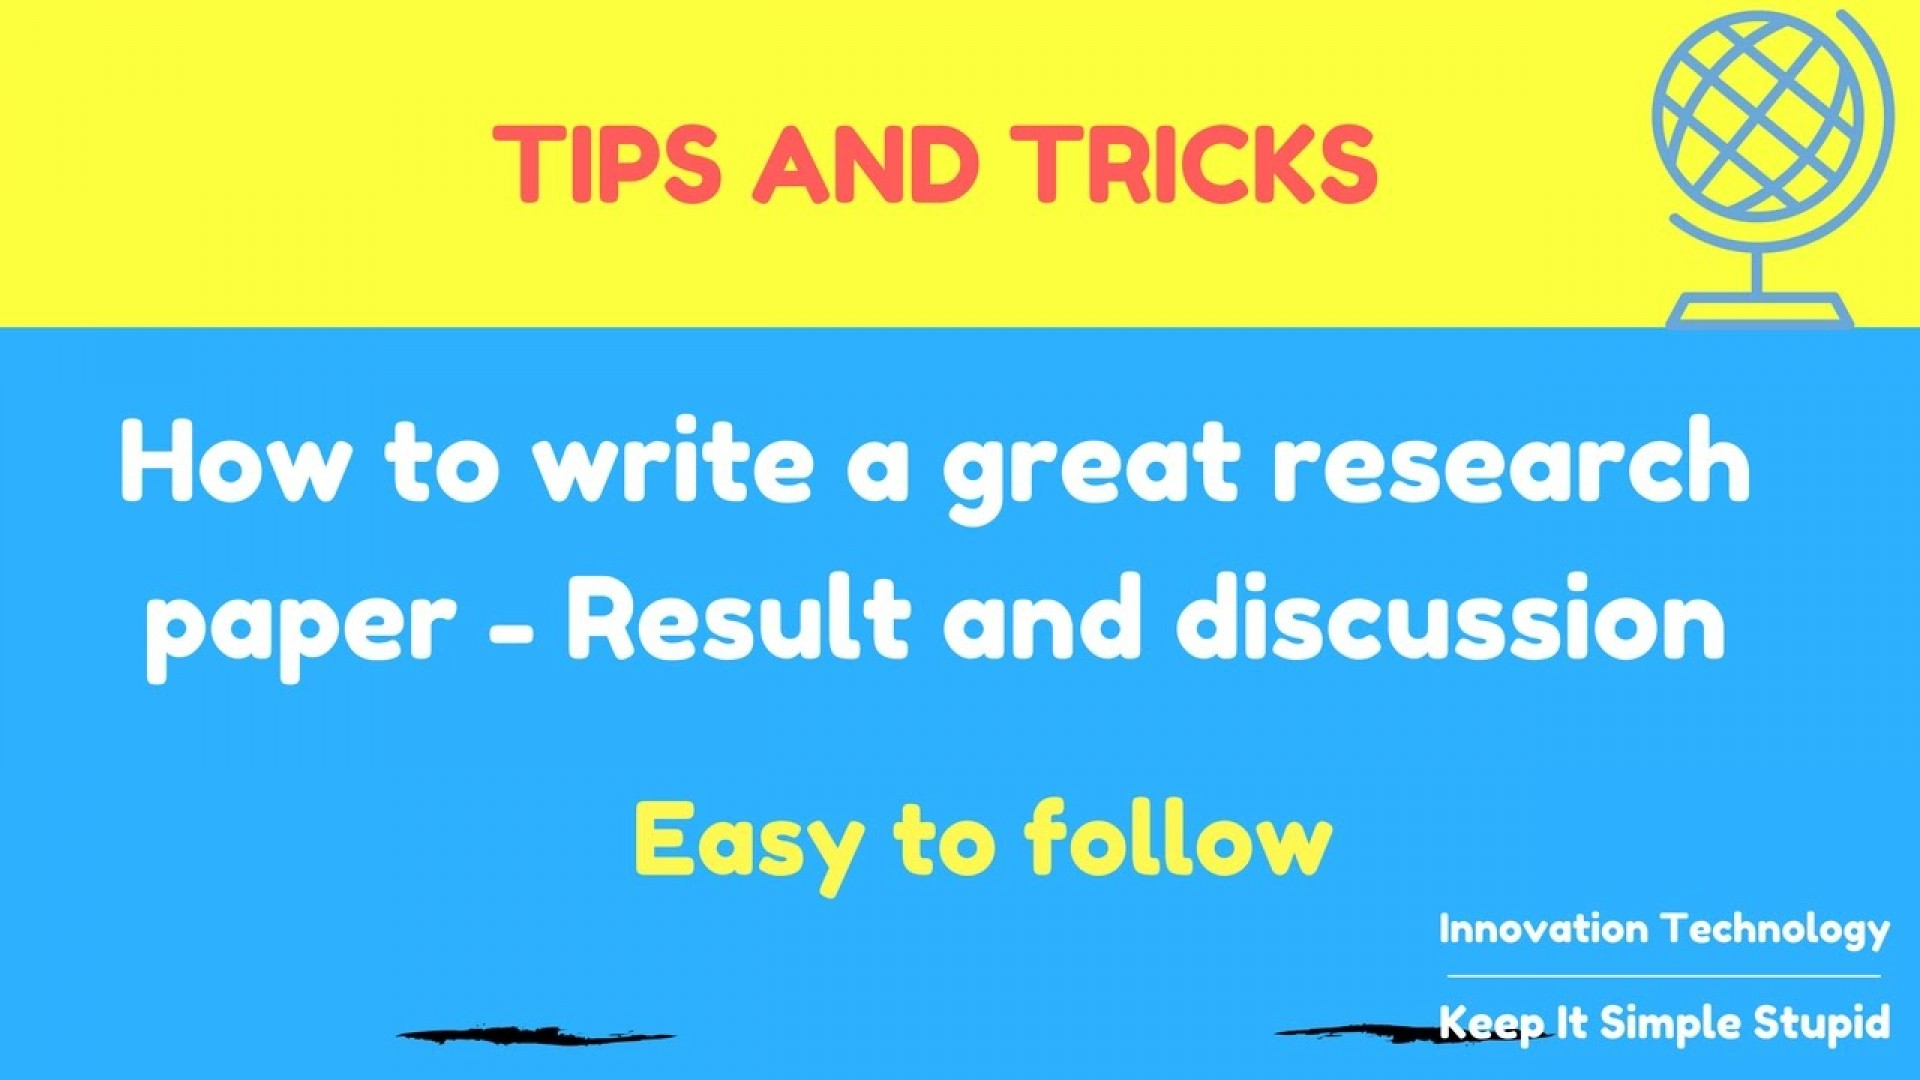 003 How To Write Research Paper Fast And Easy Singular A 1920